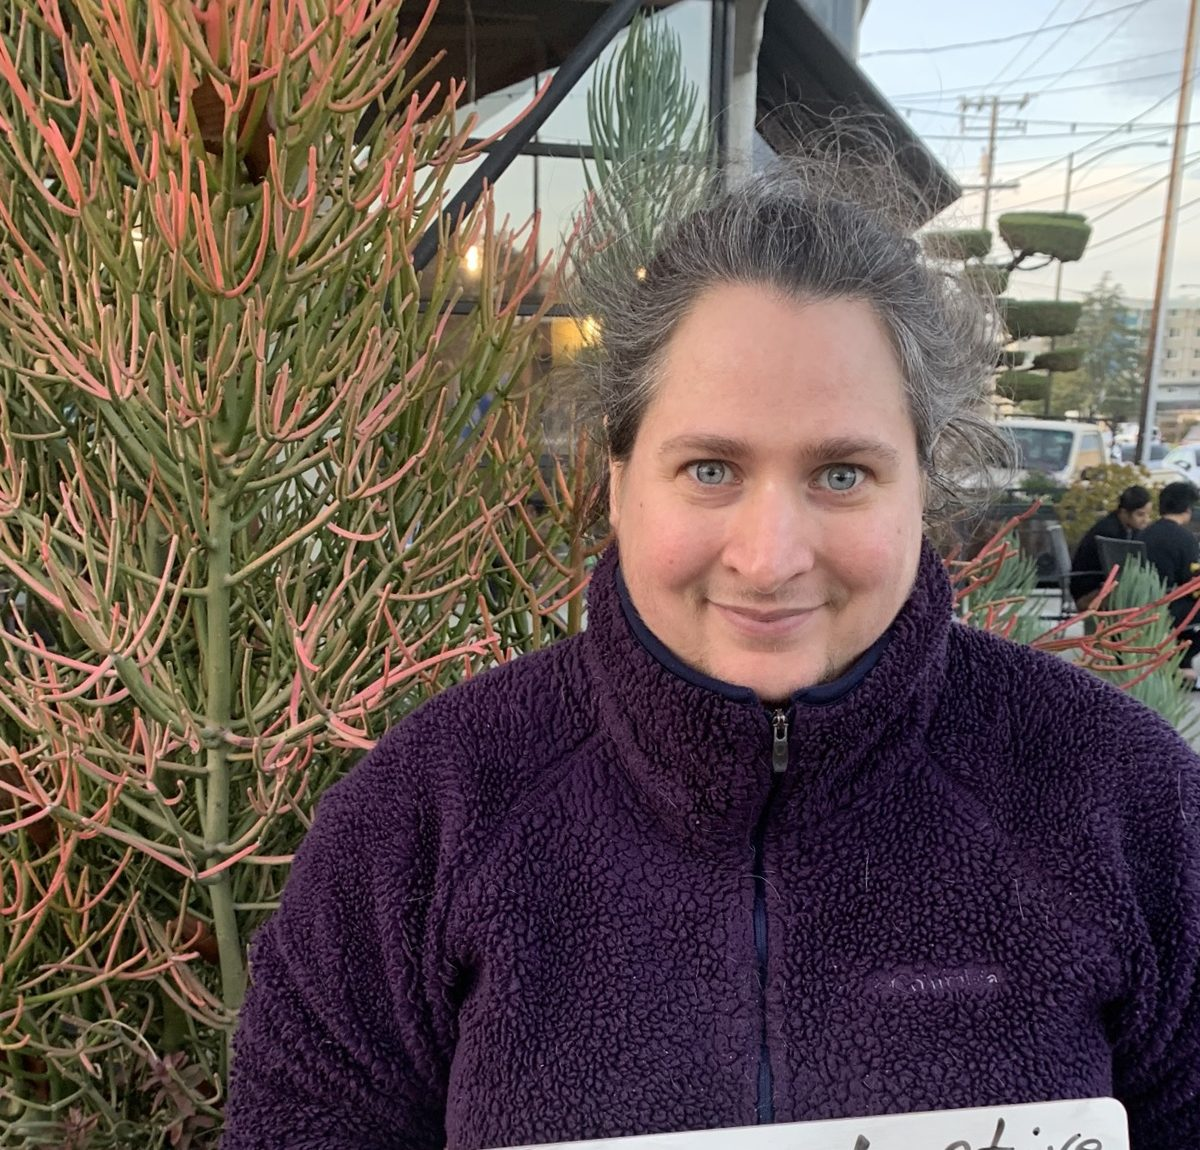 Myra, a young white woman with green eyes, wearing a purple jacket, smiling at the camera with a plant behind her.